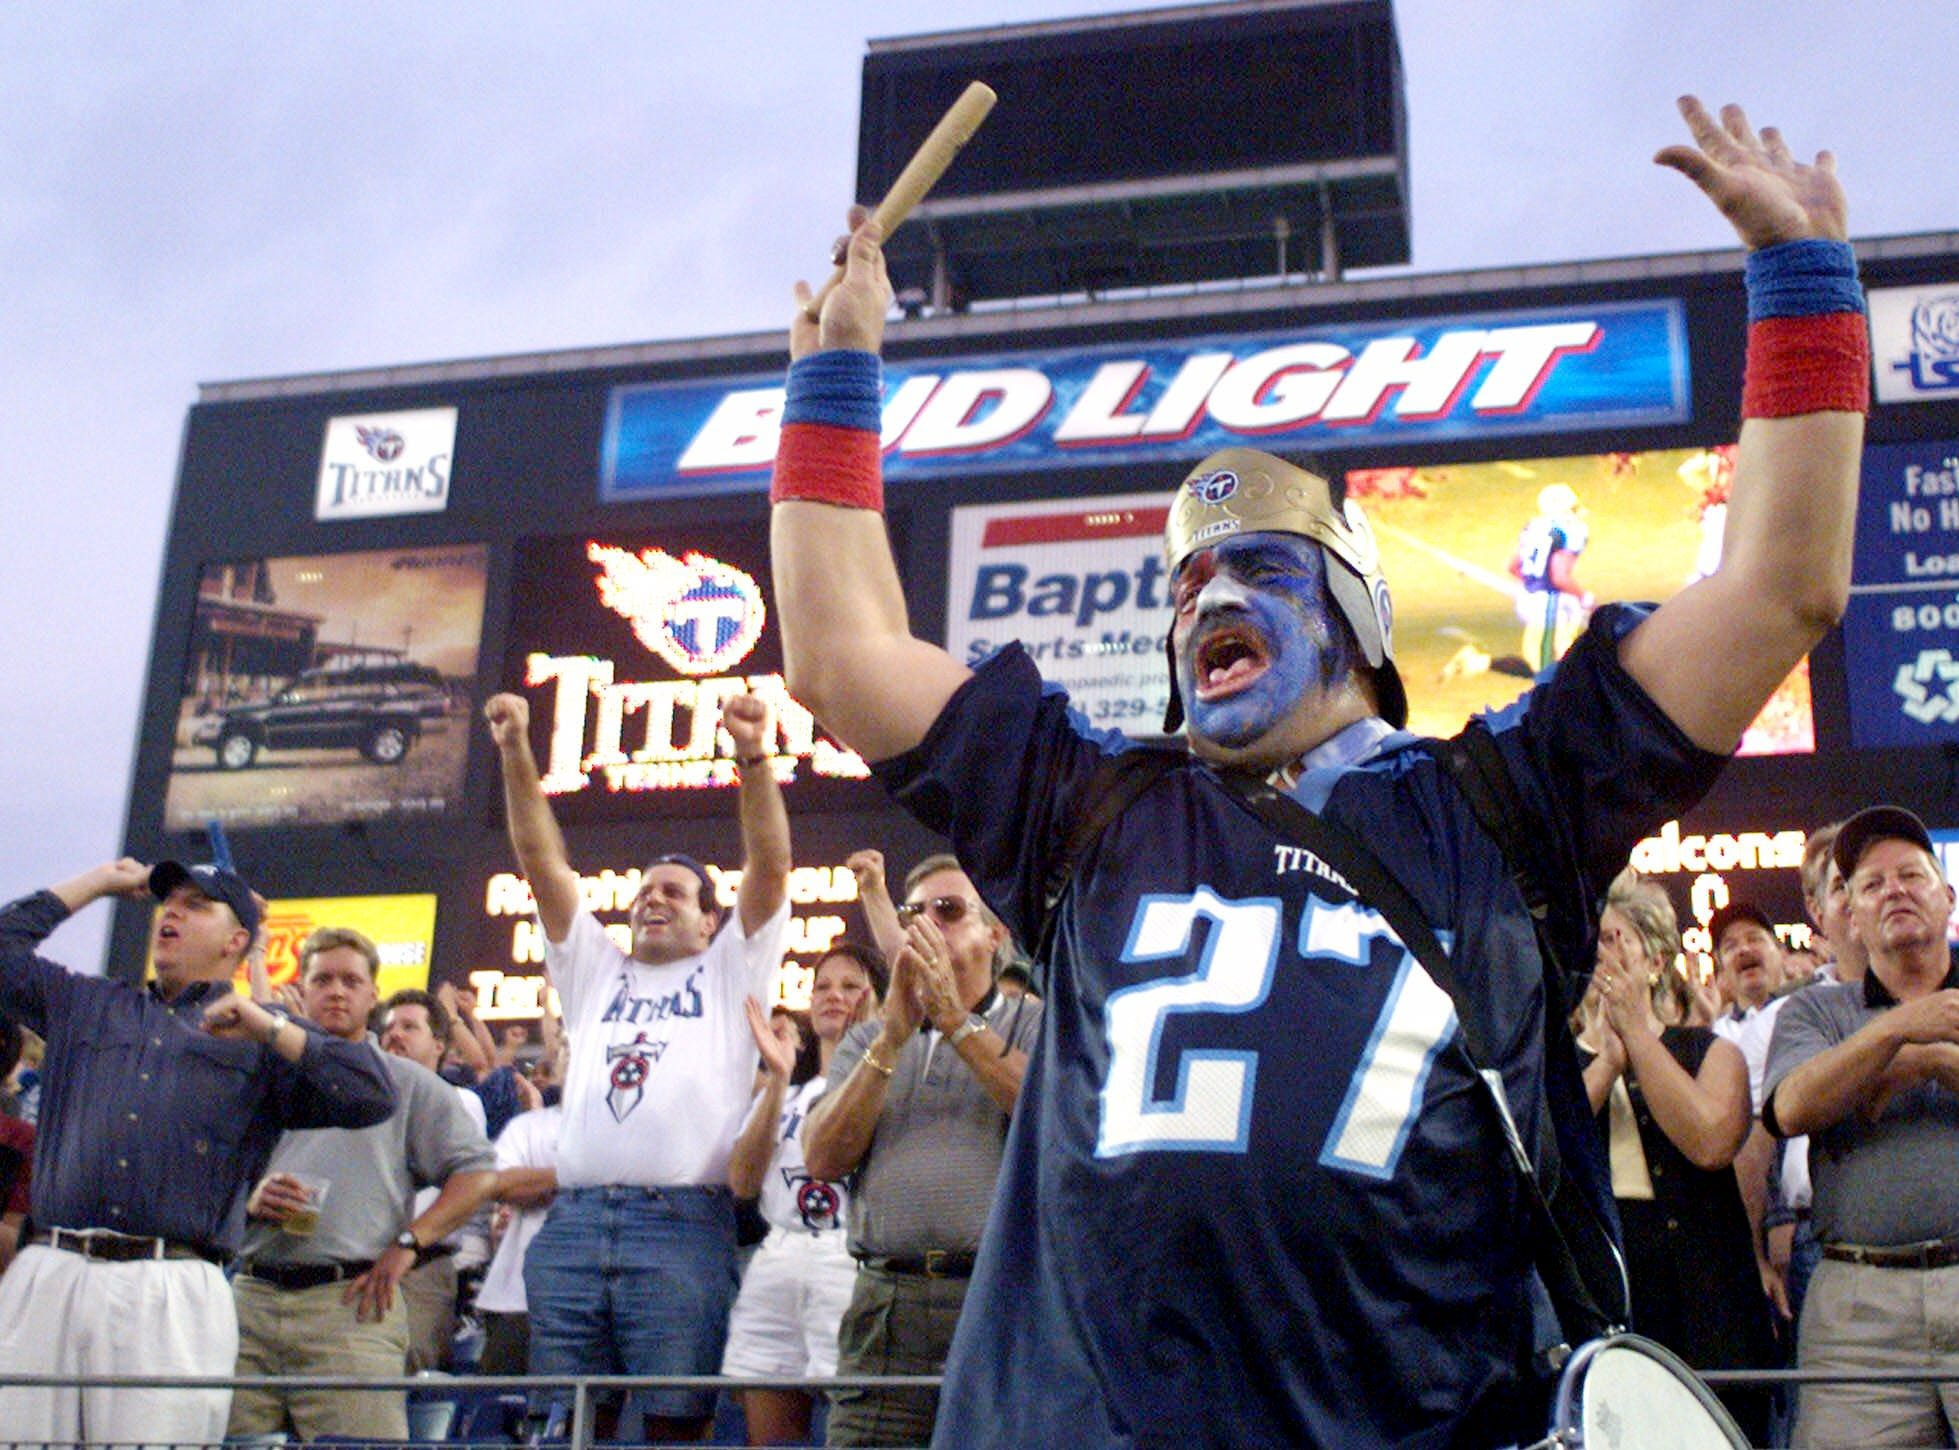 Tennessee Titans fan Gino Rosello roars as the Titans take to the field in the first home game of the pre-sesaon at their new stadium in Nashville Aug. 27, 1999 against the Atlanta Falcons.